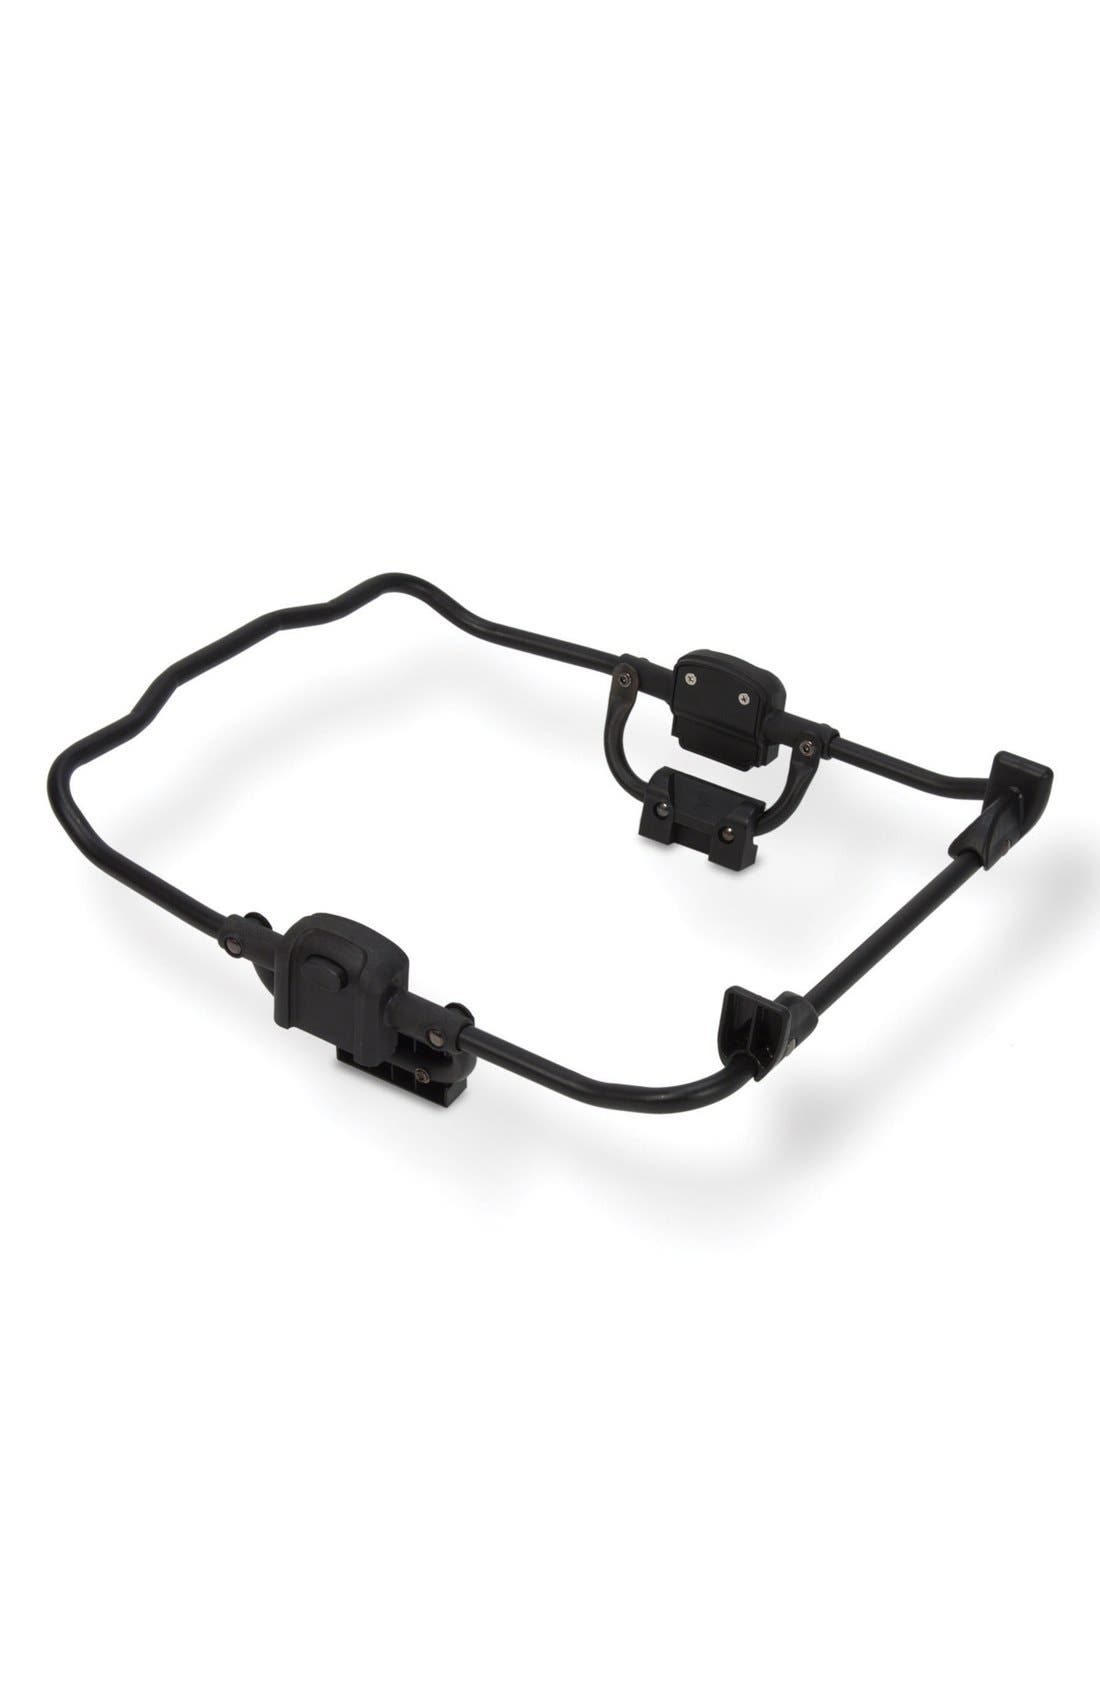 VISTA & CRUZ Stroller to Chicco<sup>®</sup> Car Seat Adapter,                         Main,                         color, Black